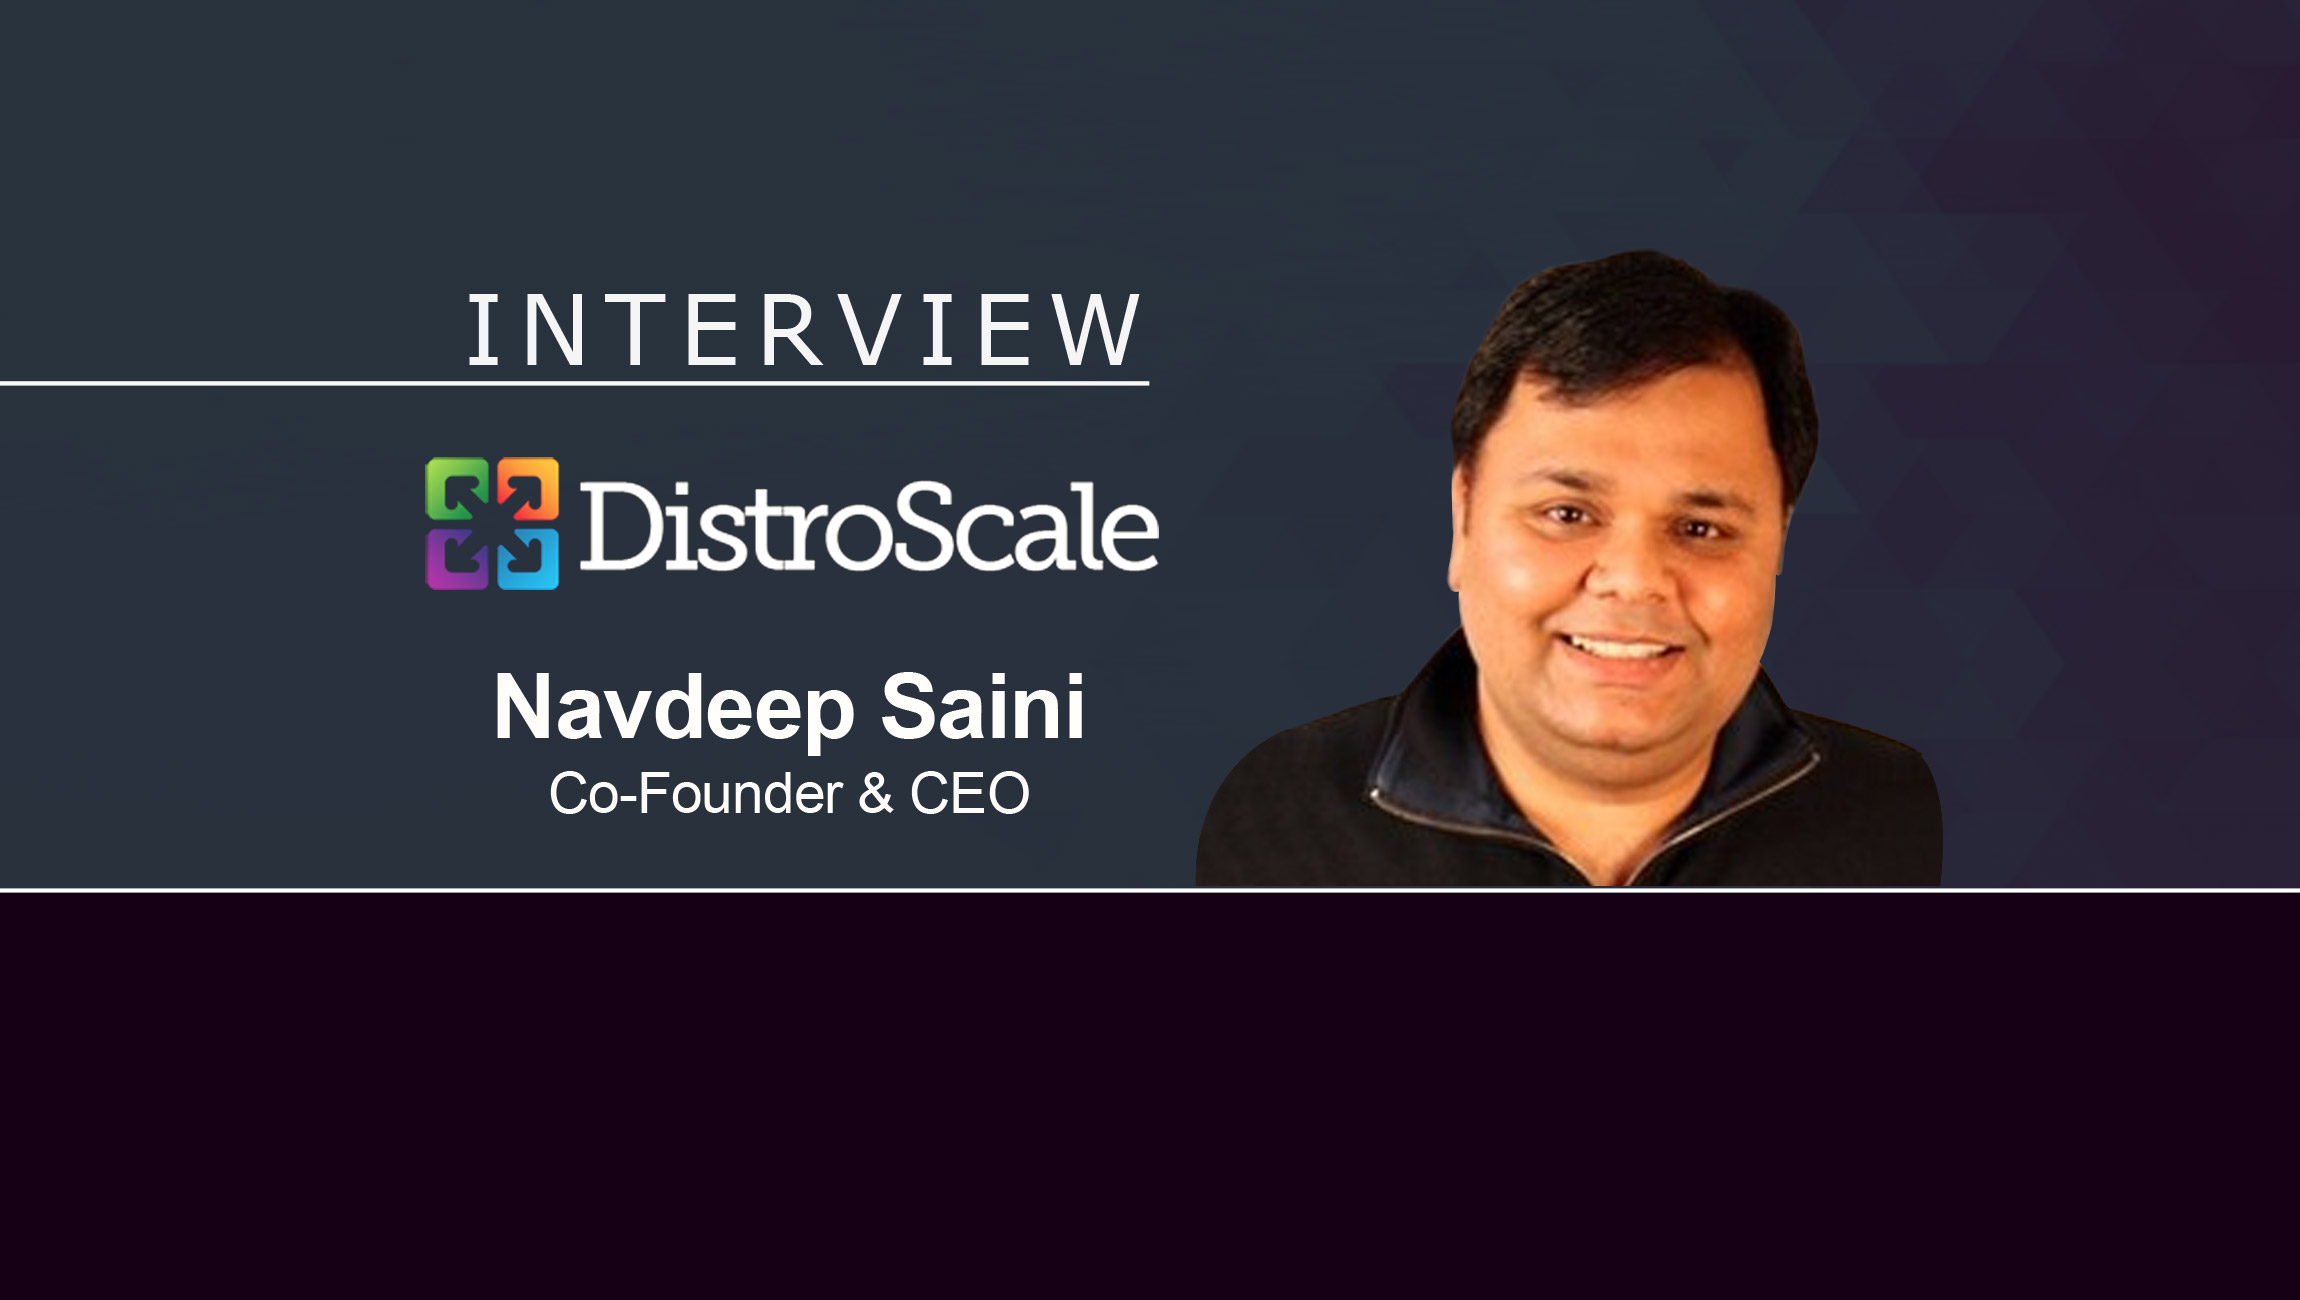 MarTech Interview with Navdeep Saini, Co-founder and CEO at DistroScale